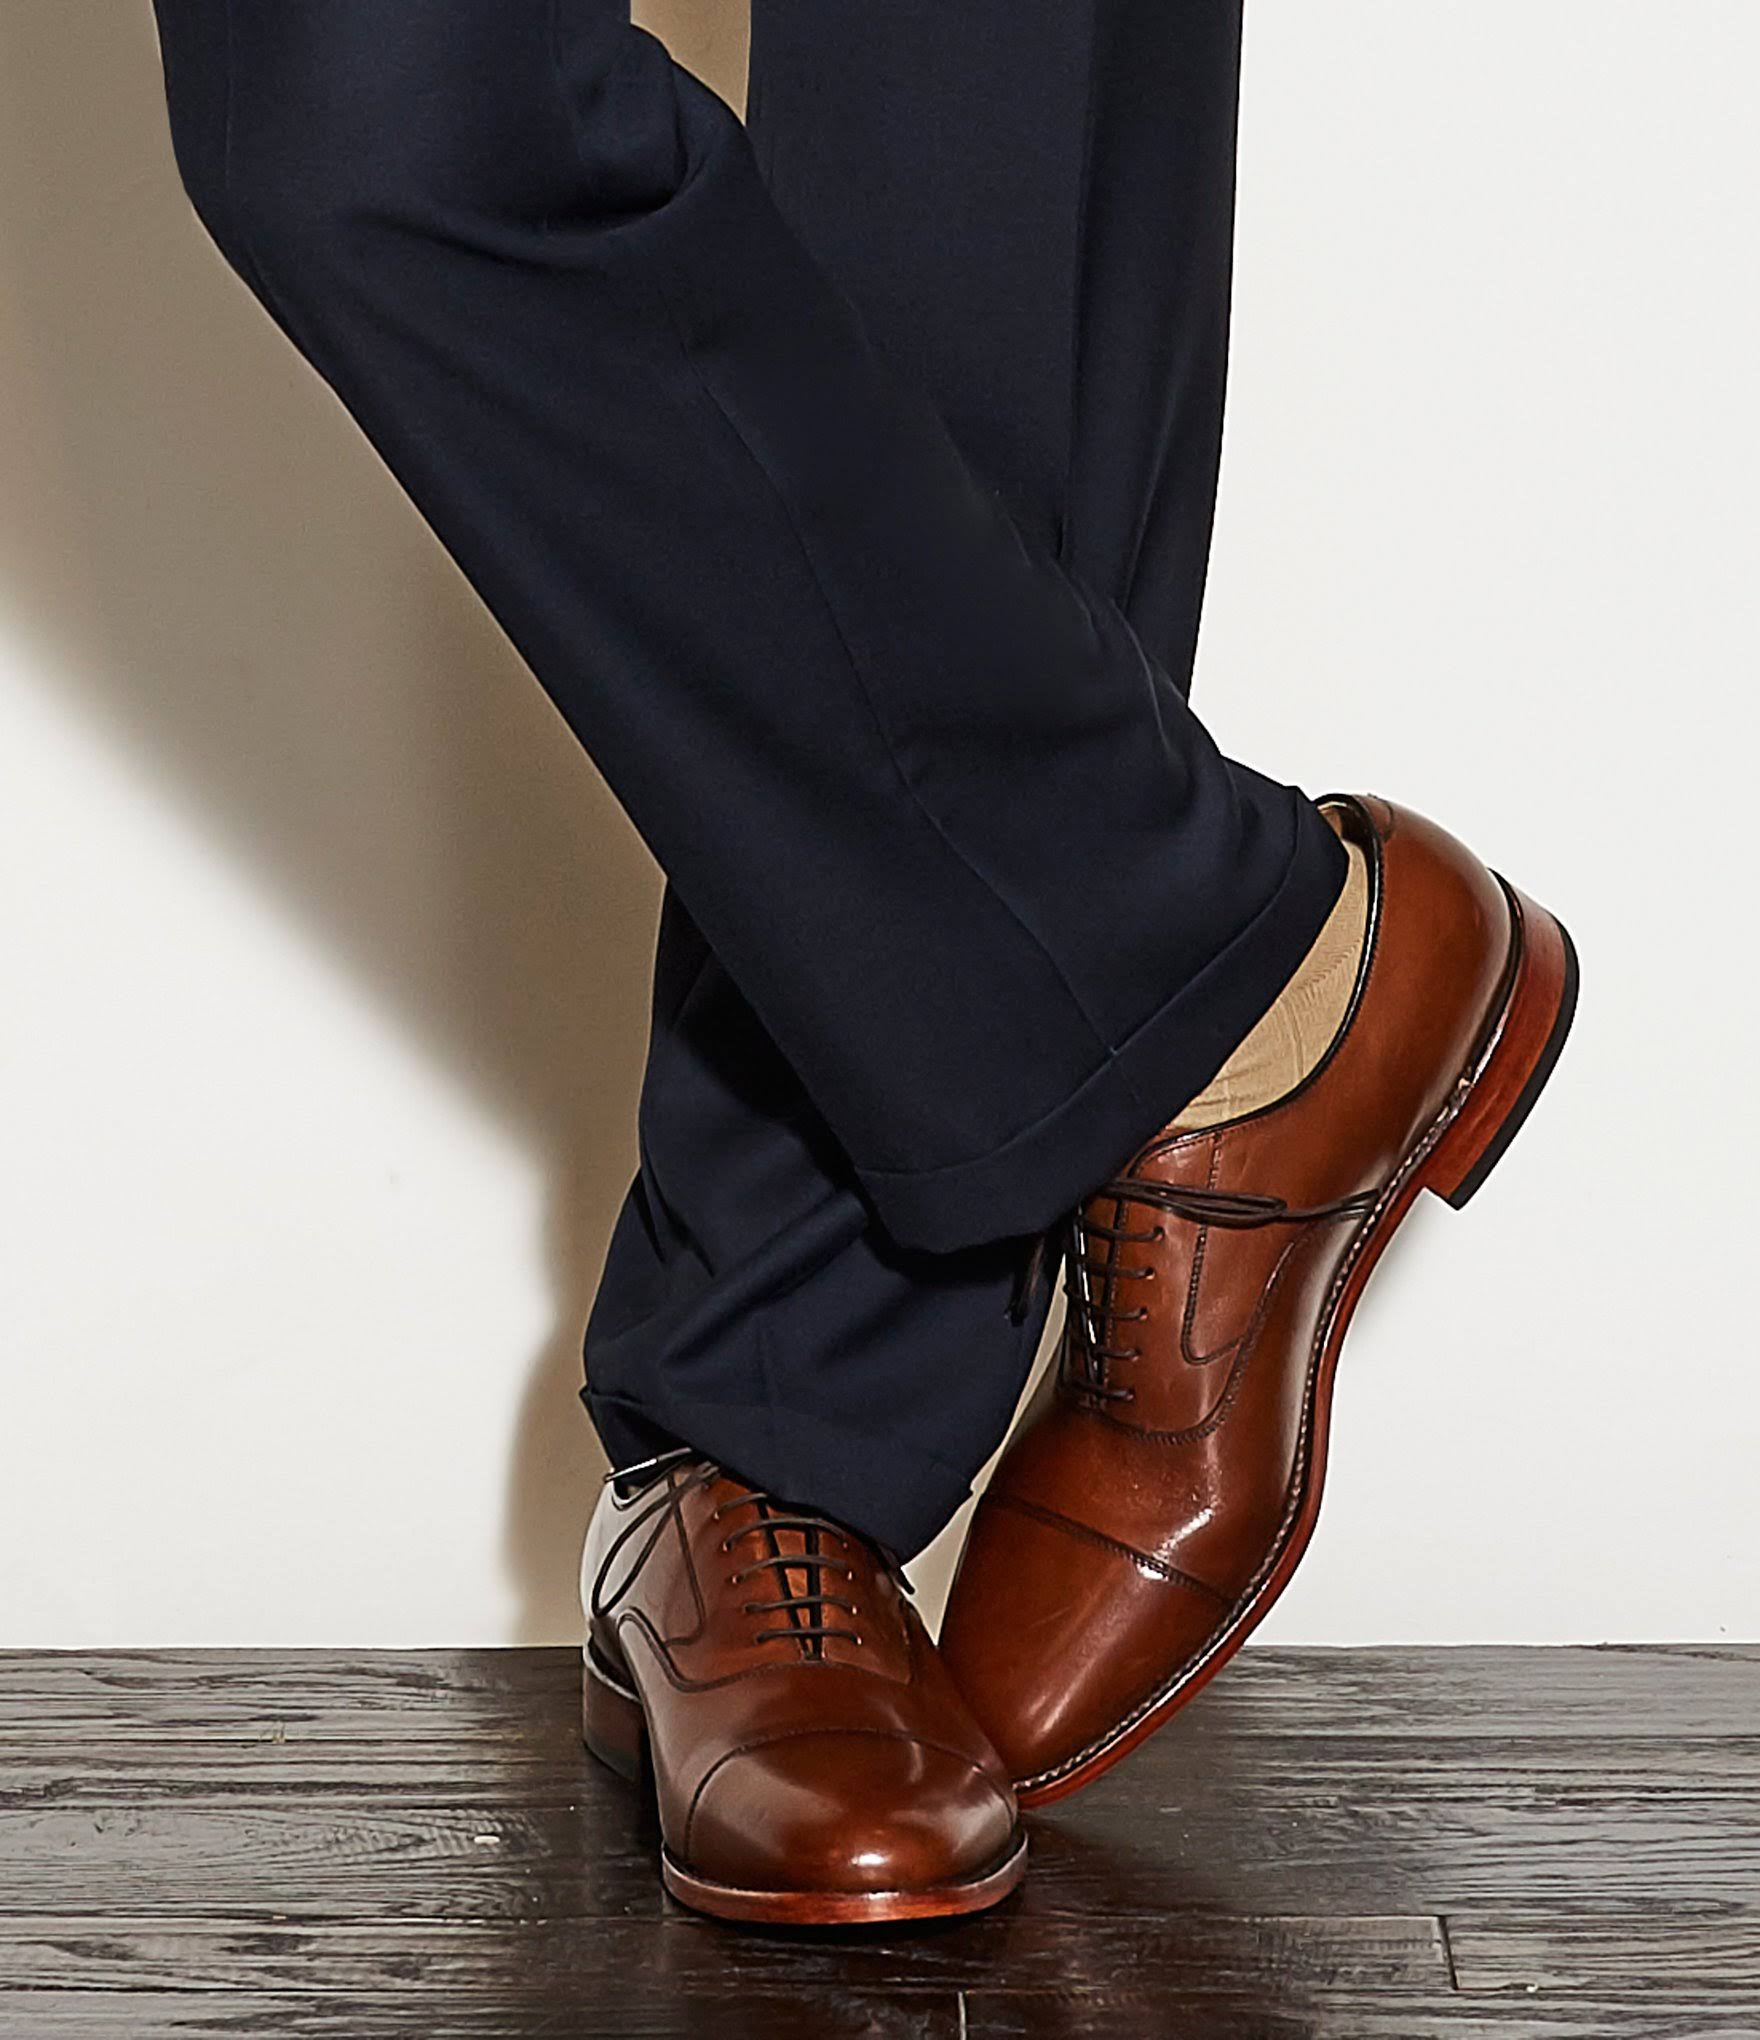 The Melton captoe oxford from Johnston and Murphy offers the best value in goodyear welted shoes. These are not styled by the Mensch - you should know this from the baggy, and too long, pants along with the wayyyy to big sizing on this poor fellah!